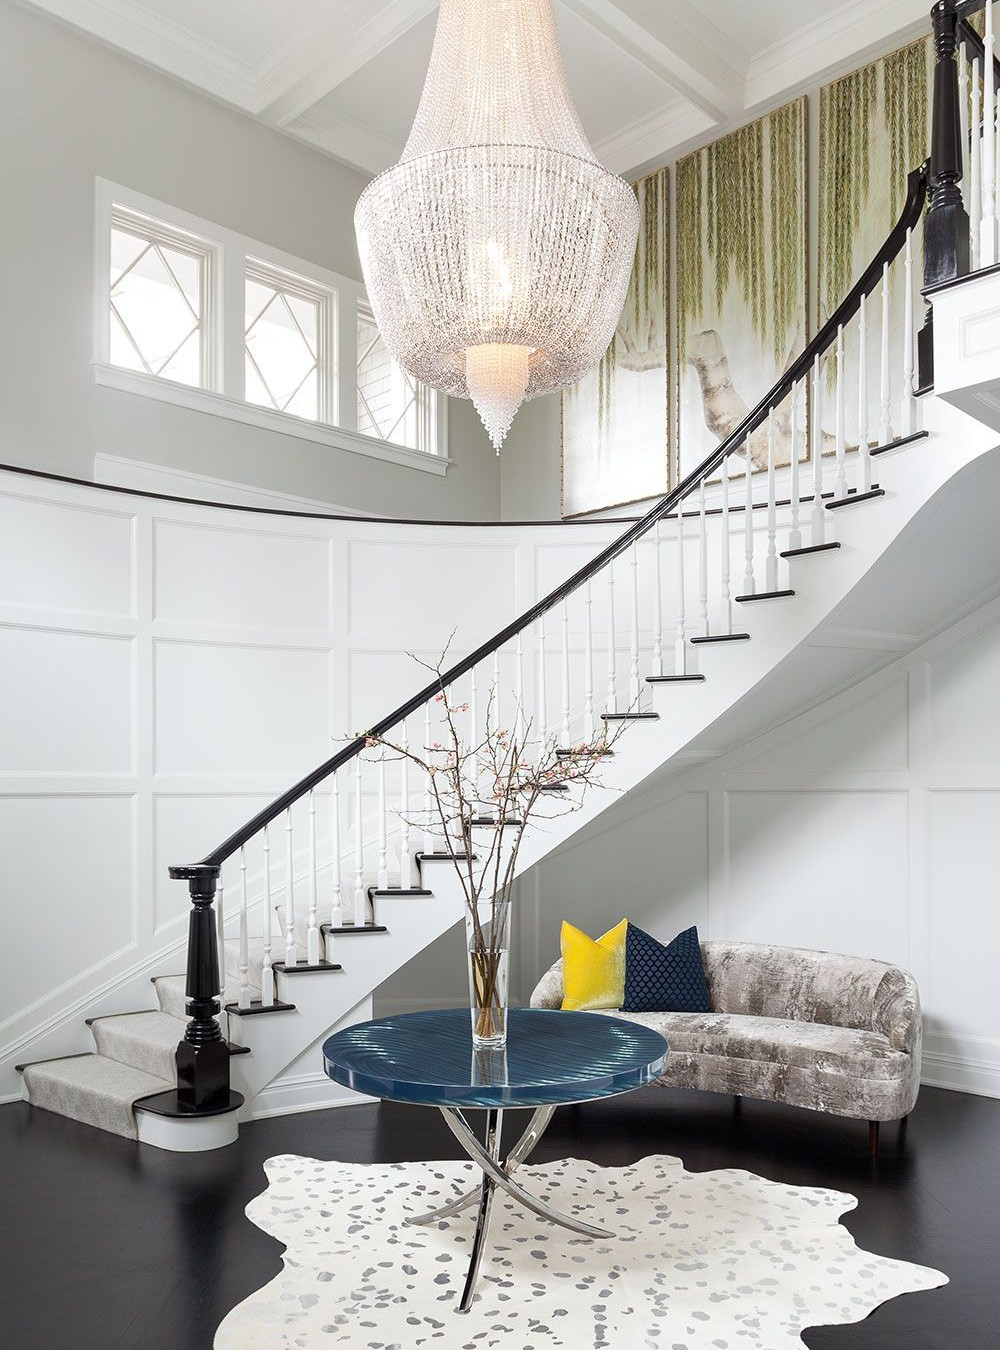 entryway lighting ideas 22 Outrageously Stunning Entryway Lighting Ideas 22 Outrageously Stunning Entryway Lighting Ideas 1 16